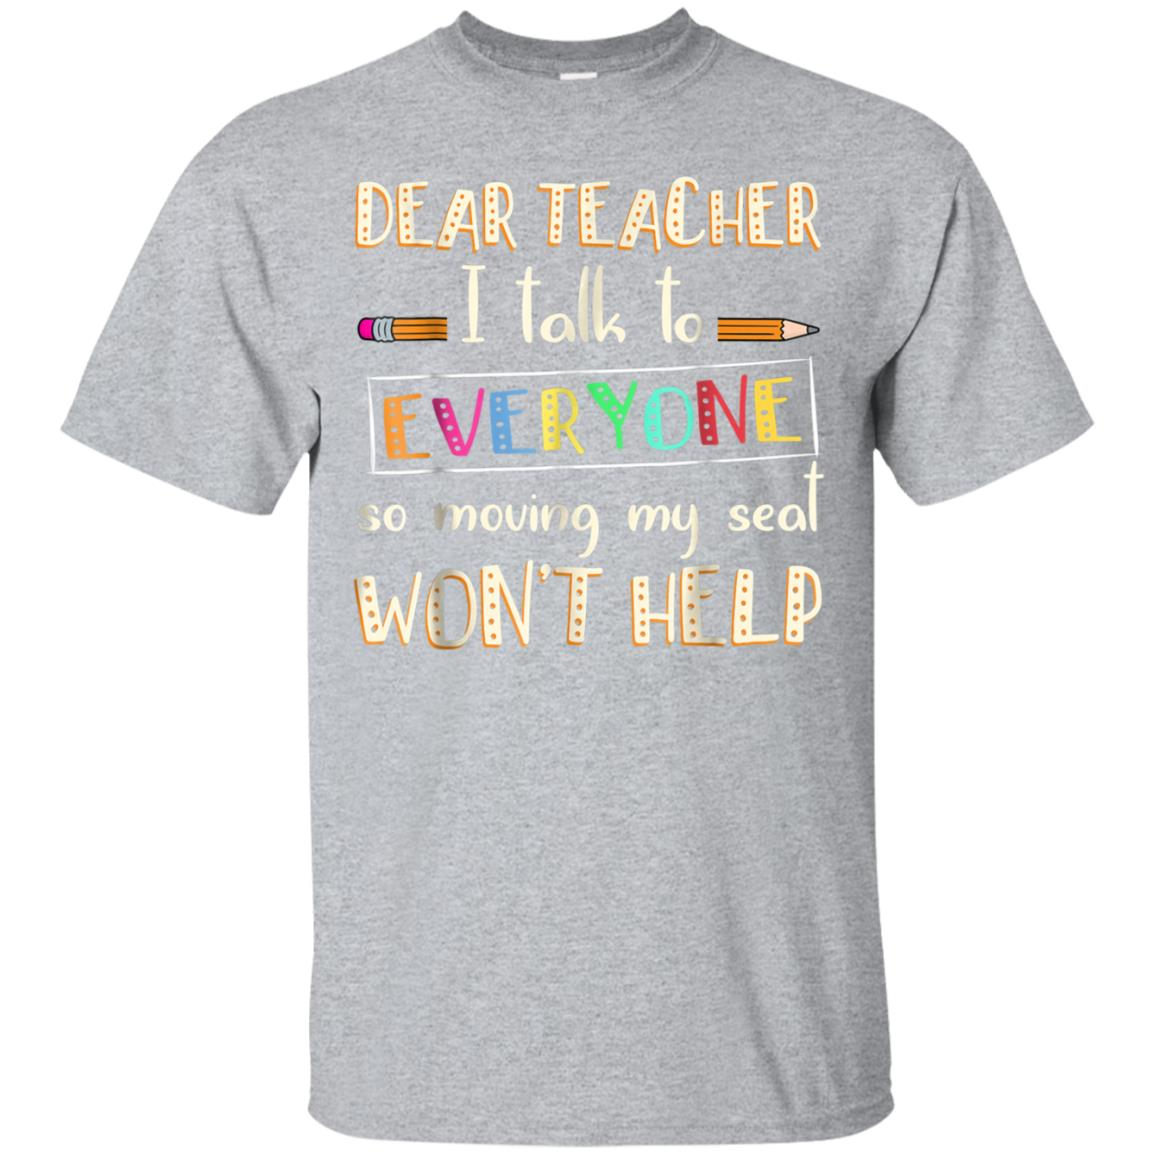 Dear Teacher I Talk To Everyone So Moving My Seat Shirt 99promocode